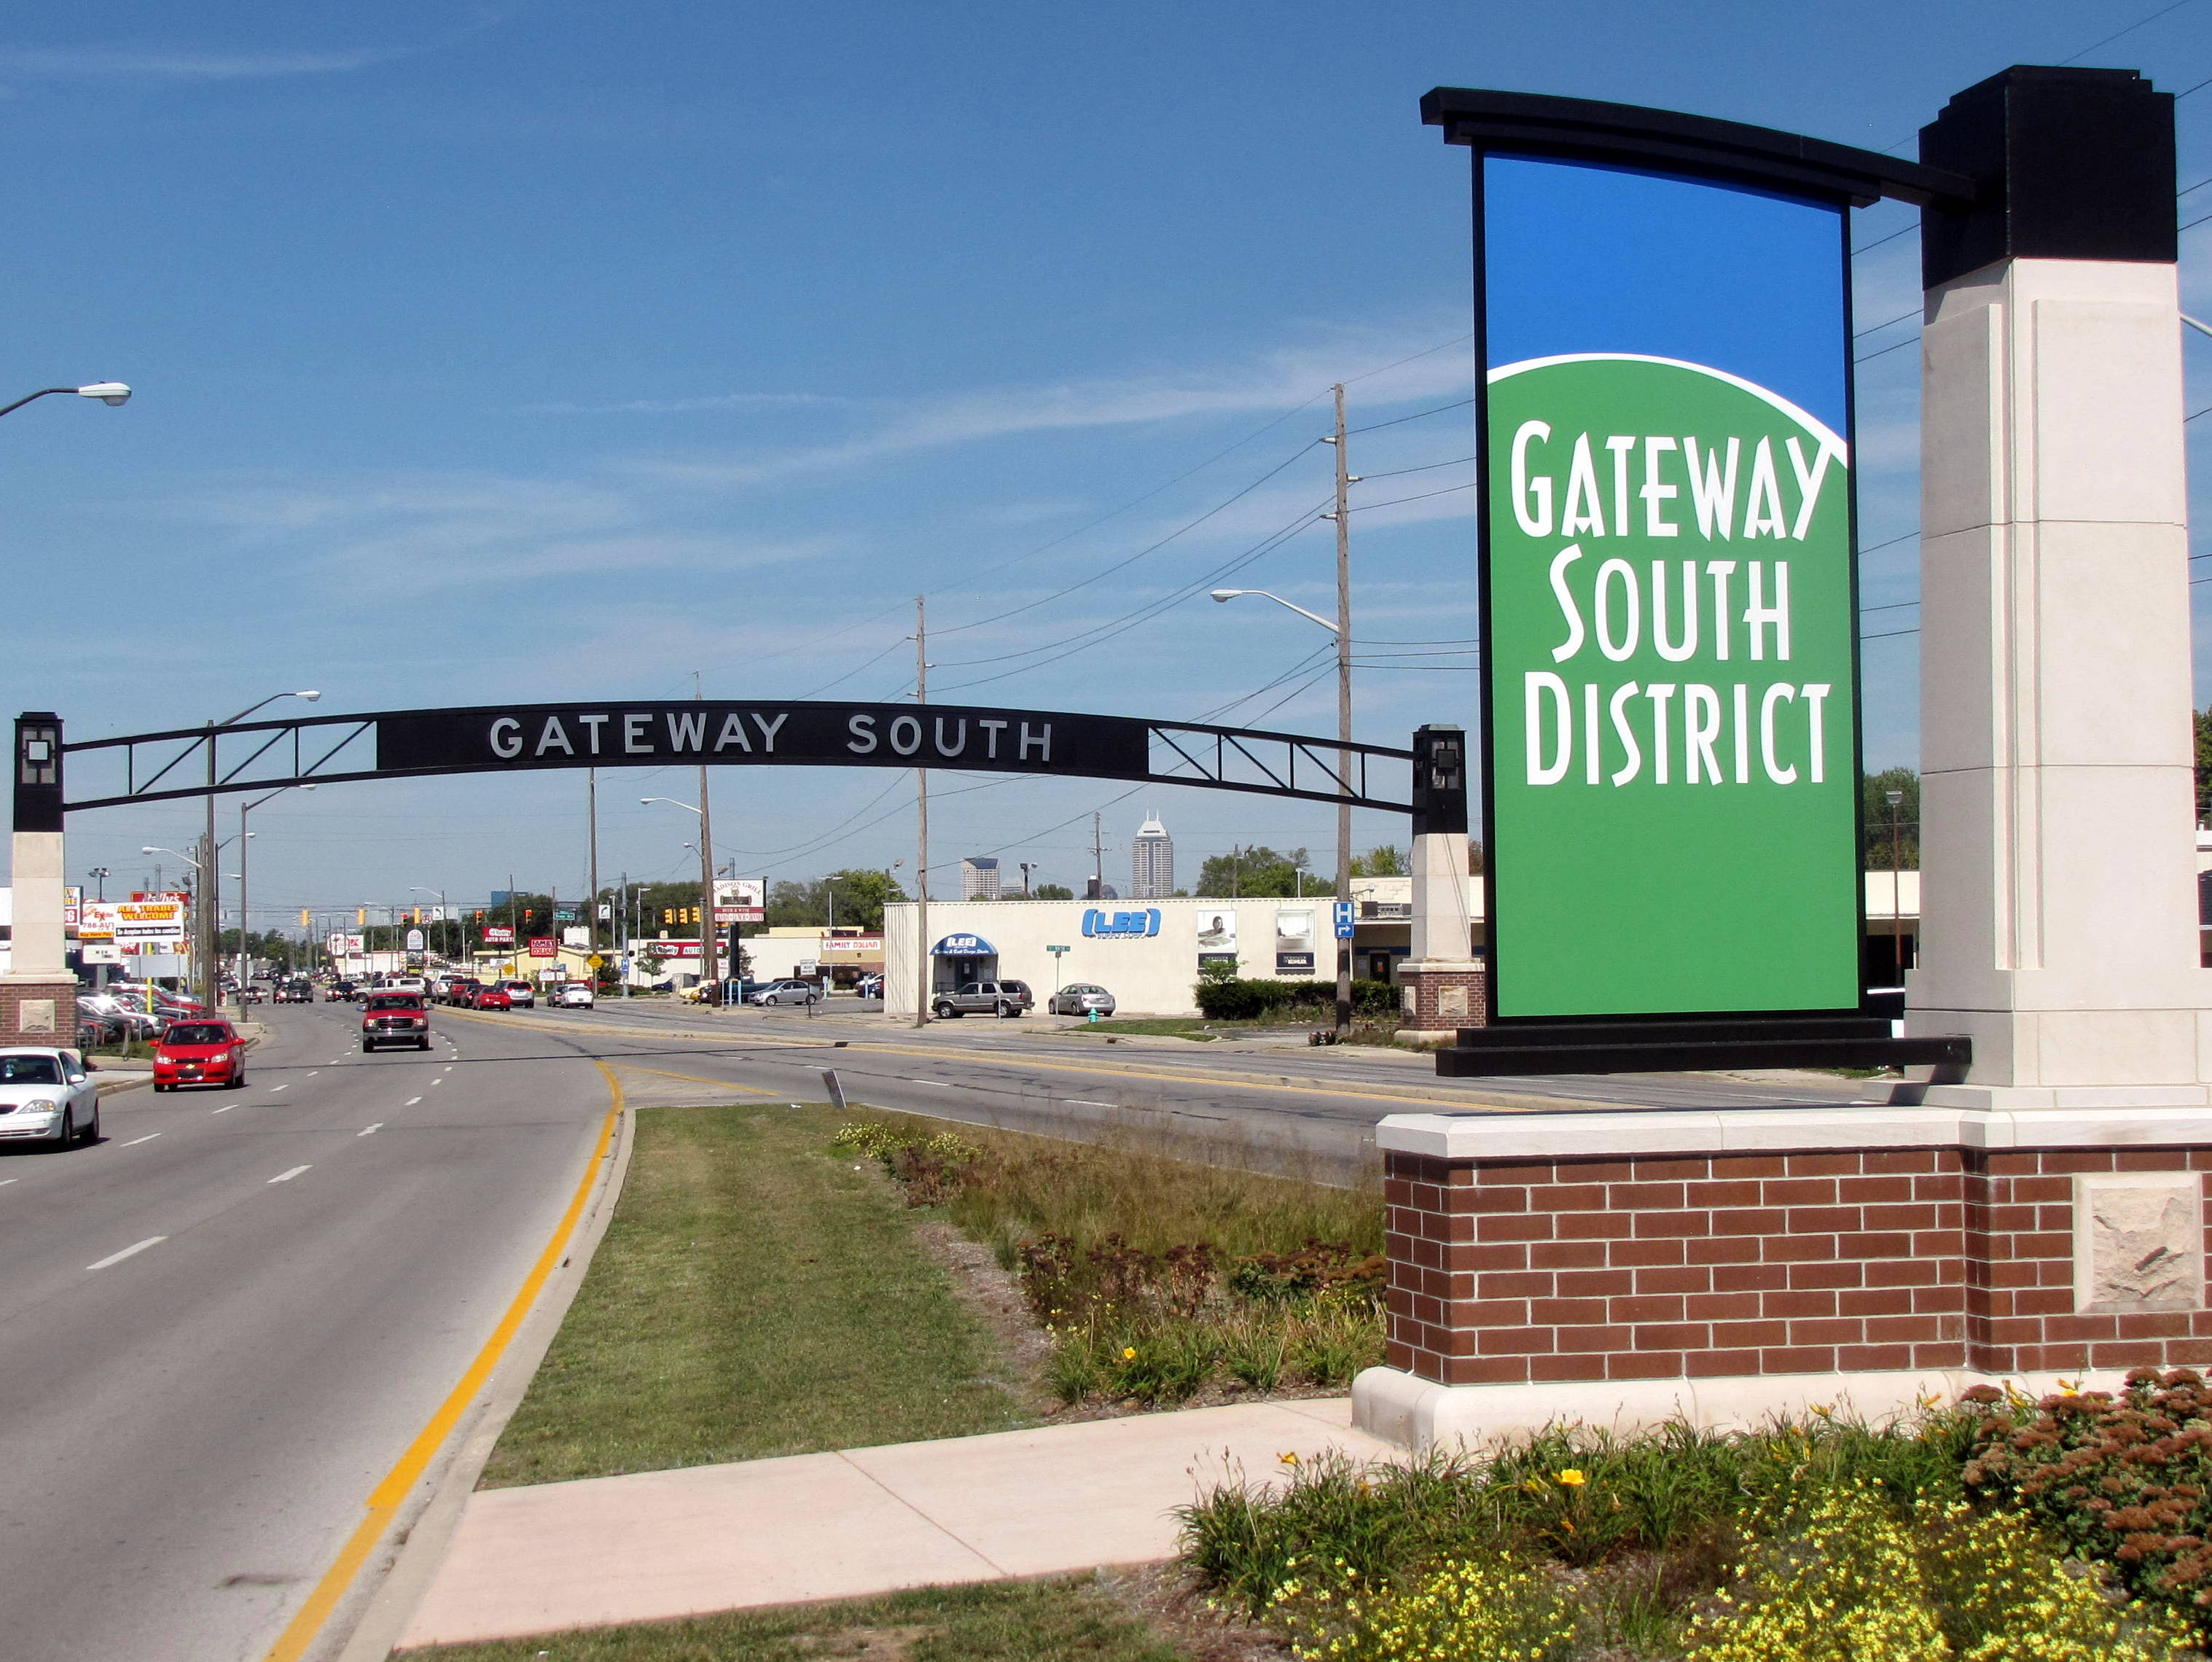 Gateway South